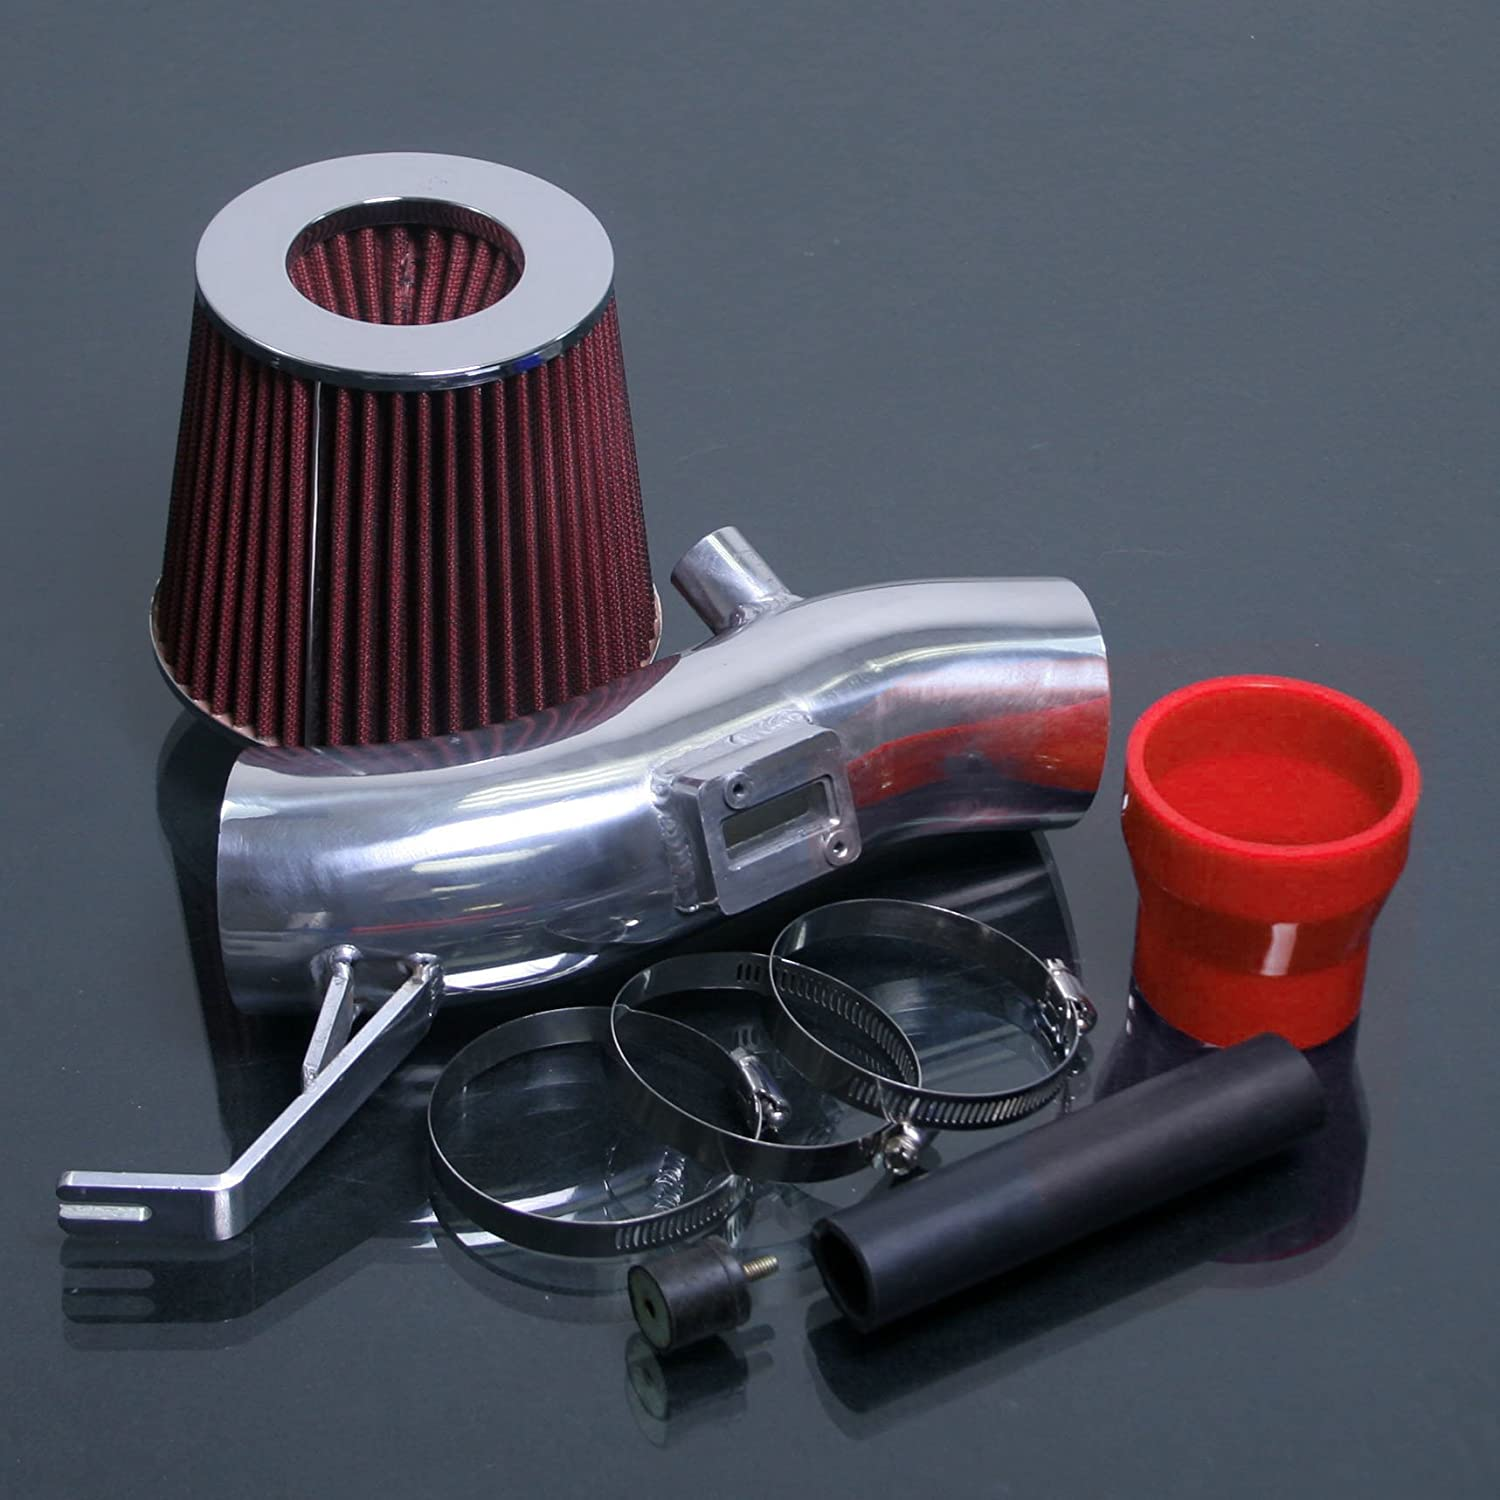 RED PERFORMANCE AIR INTAKE KIT FILTER FOR 2007-2012 NISSAN ALTIMA 2.5 2.5 L4 ENGINE